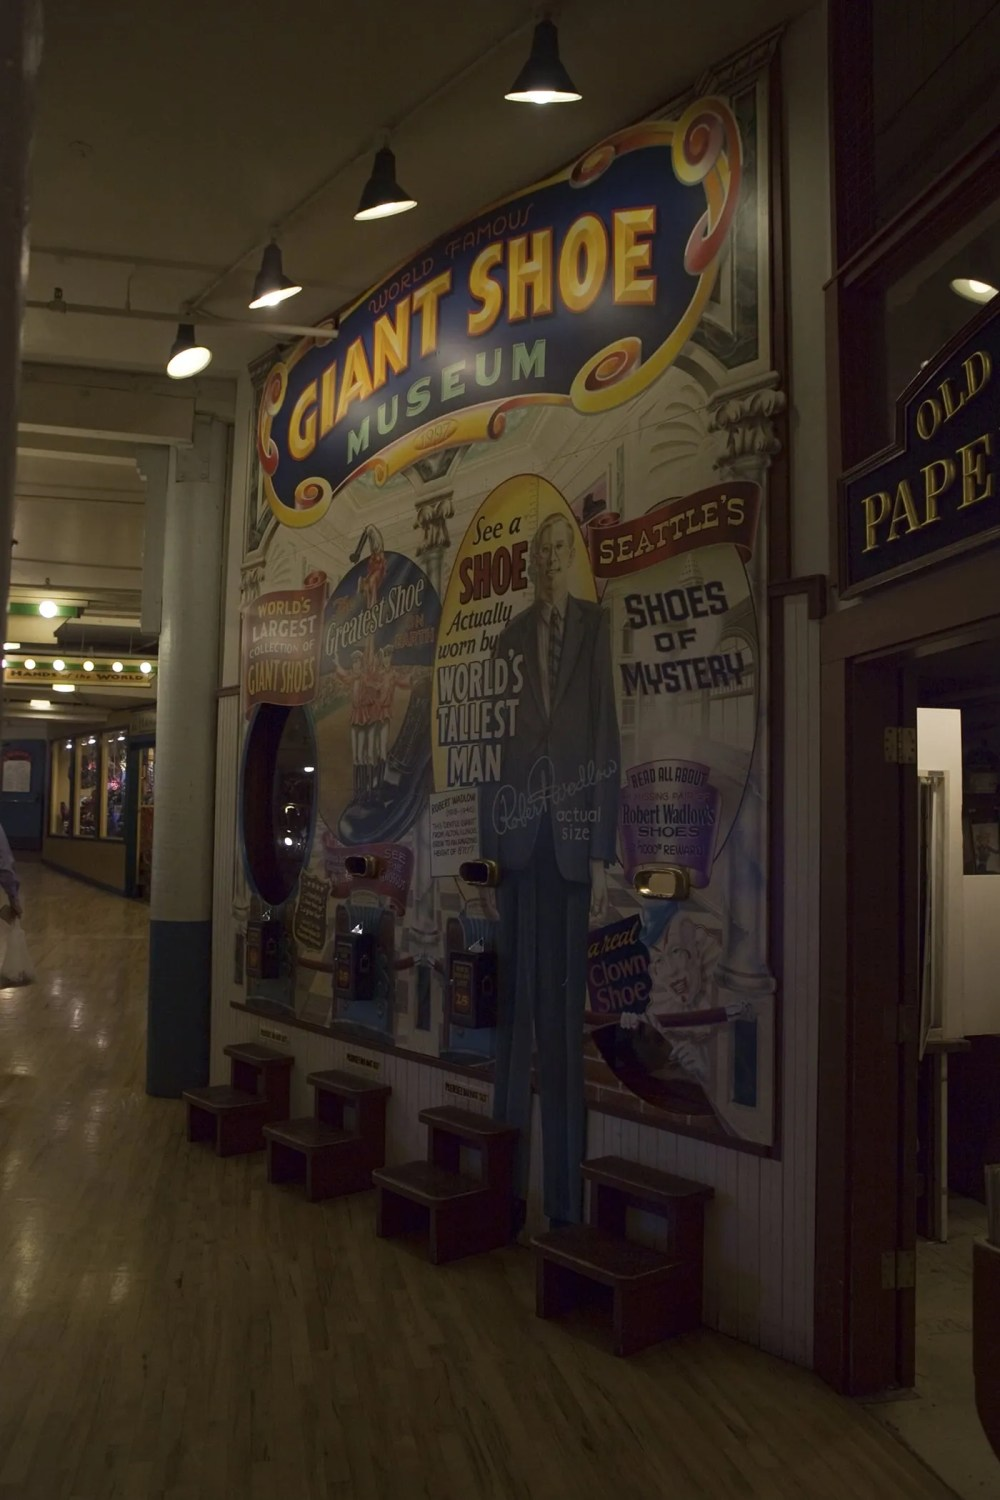 The World Famous Giant Shoe Museum in Pike Place Market in Seattle, Washington.